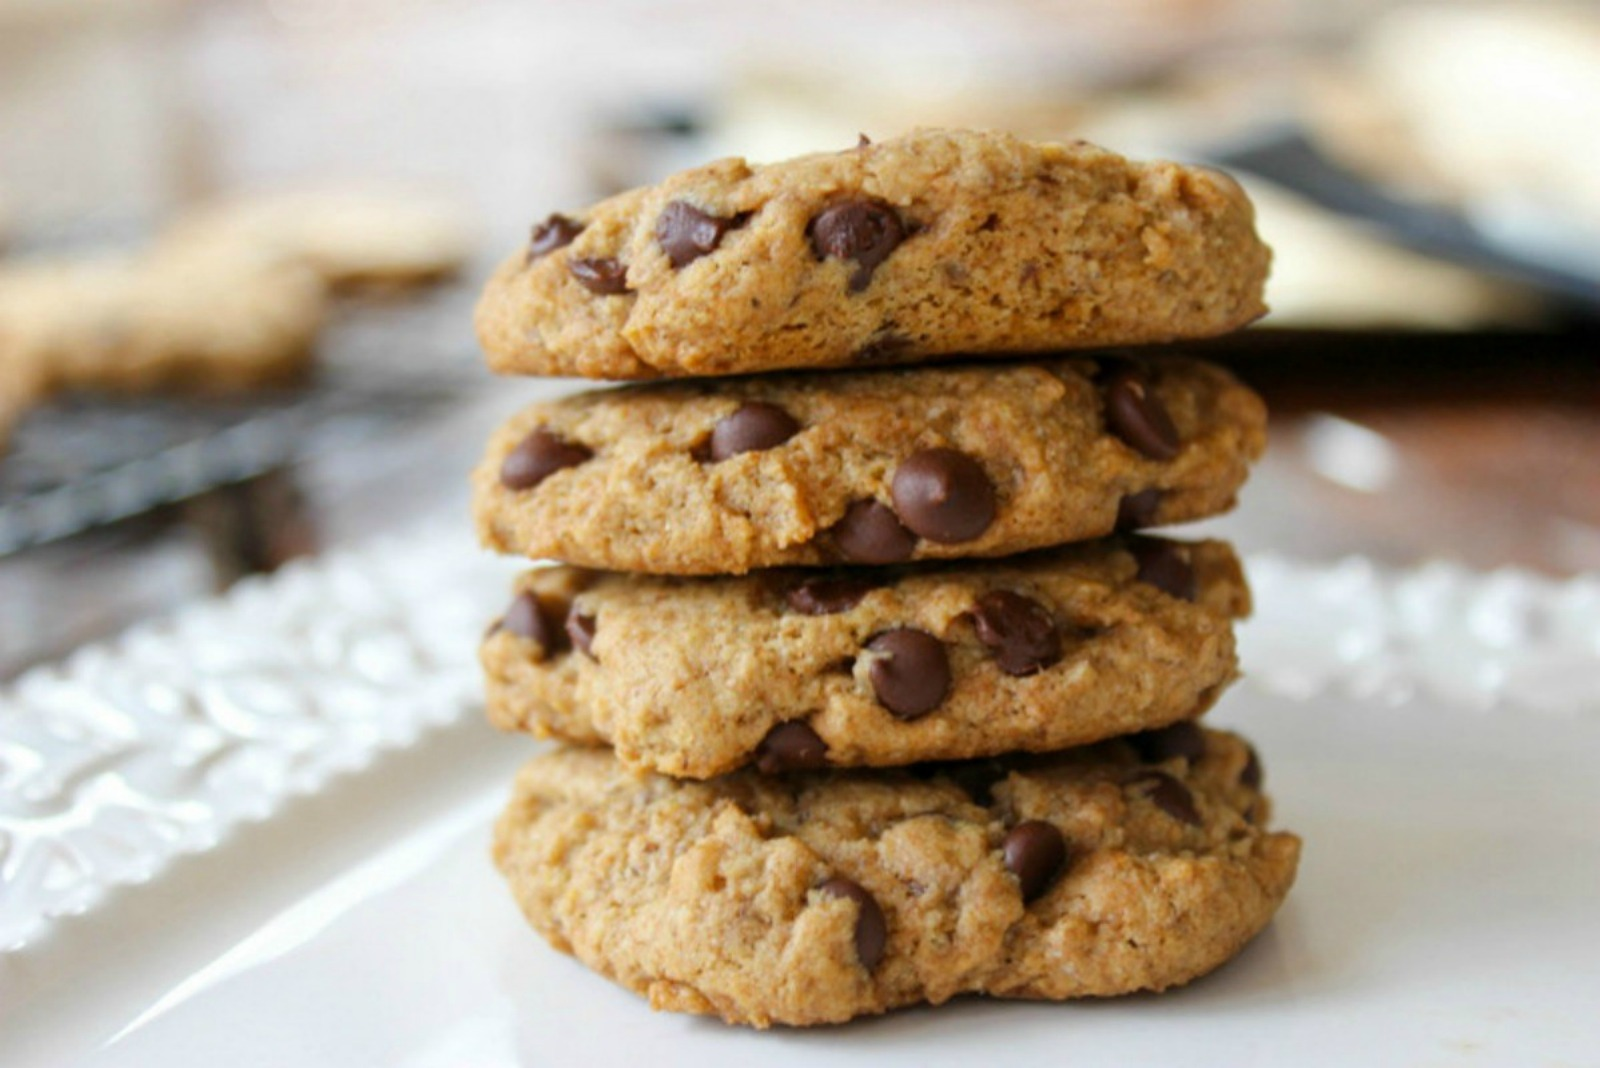 13 Killer Chocolate Chip Recipes for National Chocolate Chip Day